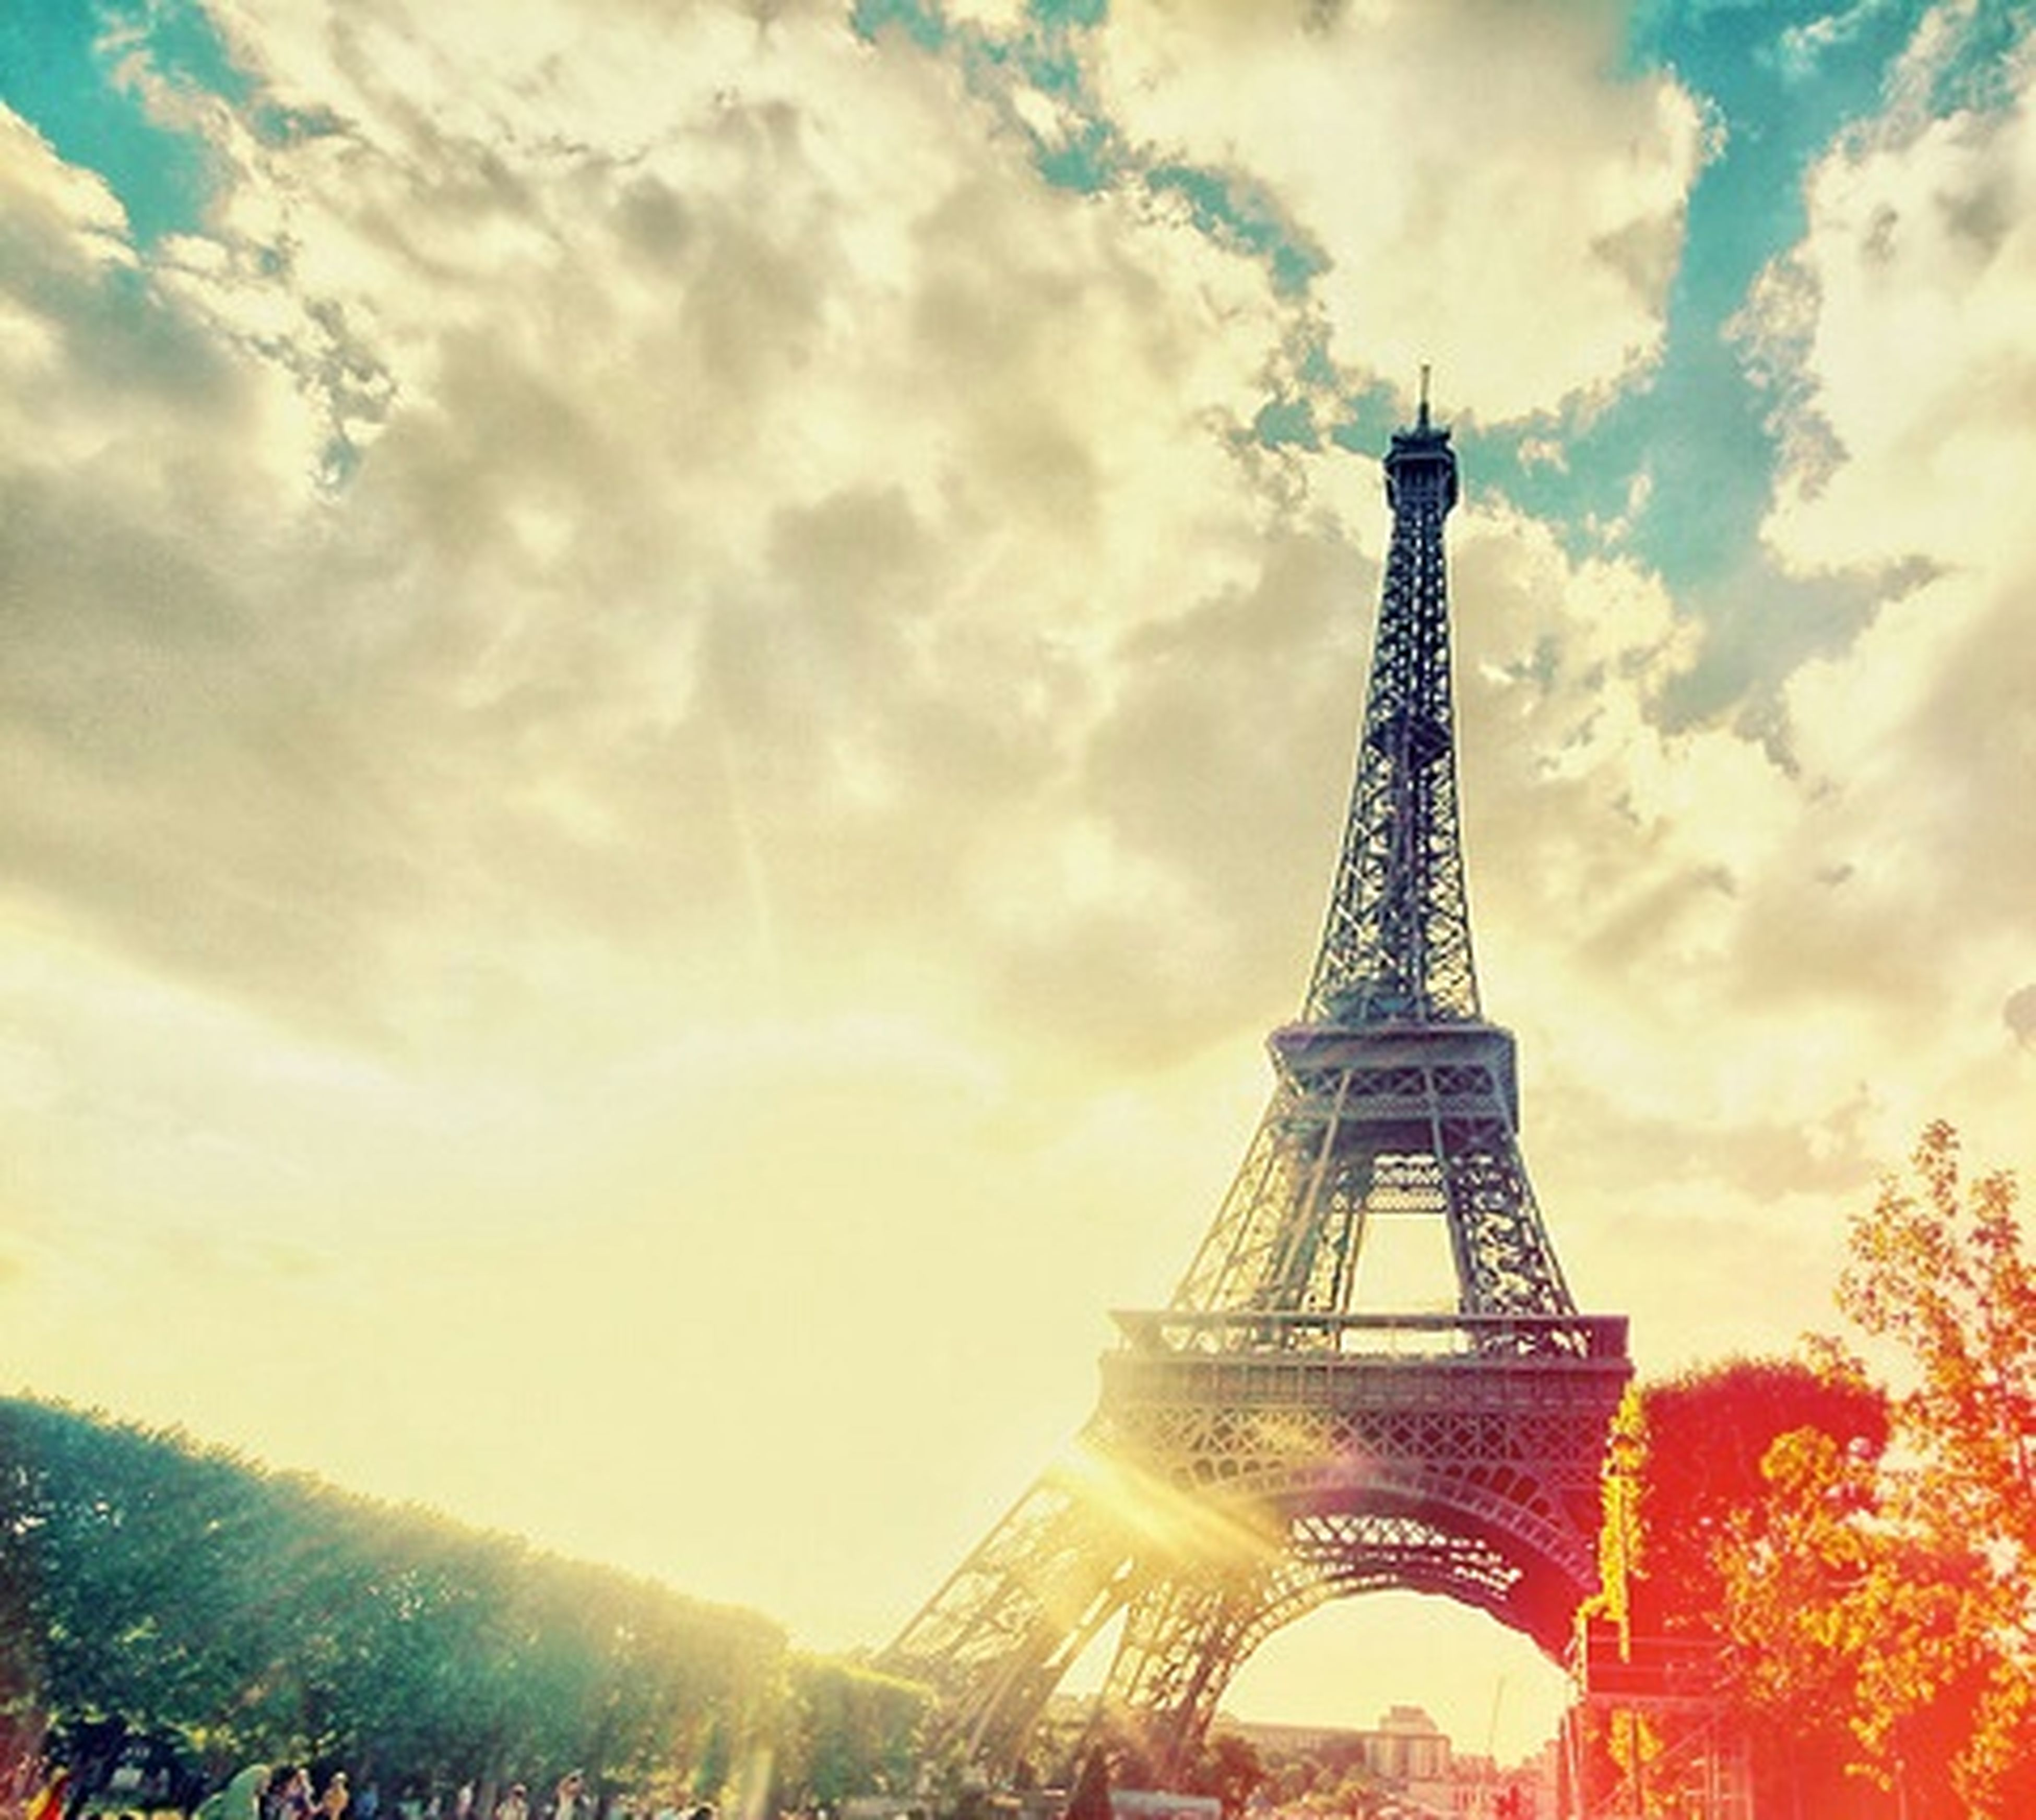 architecture, eiffel tower, built structure, famous place, international landmark, travel destinations, tower, sky, tourism, tall - high, capital cities, travel, culture, cloud - sky, low angle view, metal, building exterior, city, cloudy, history